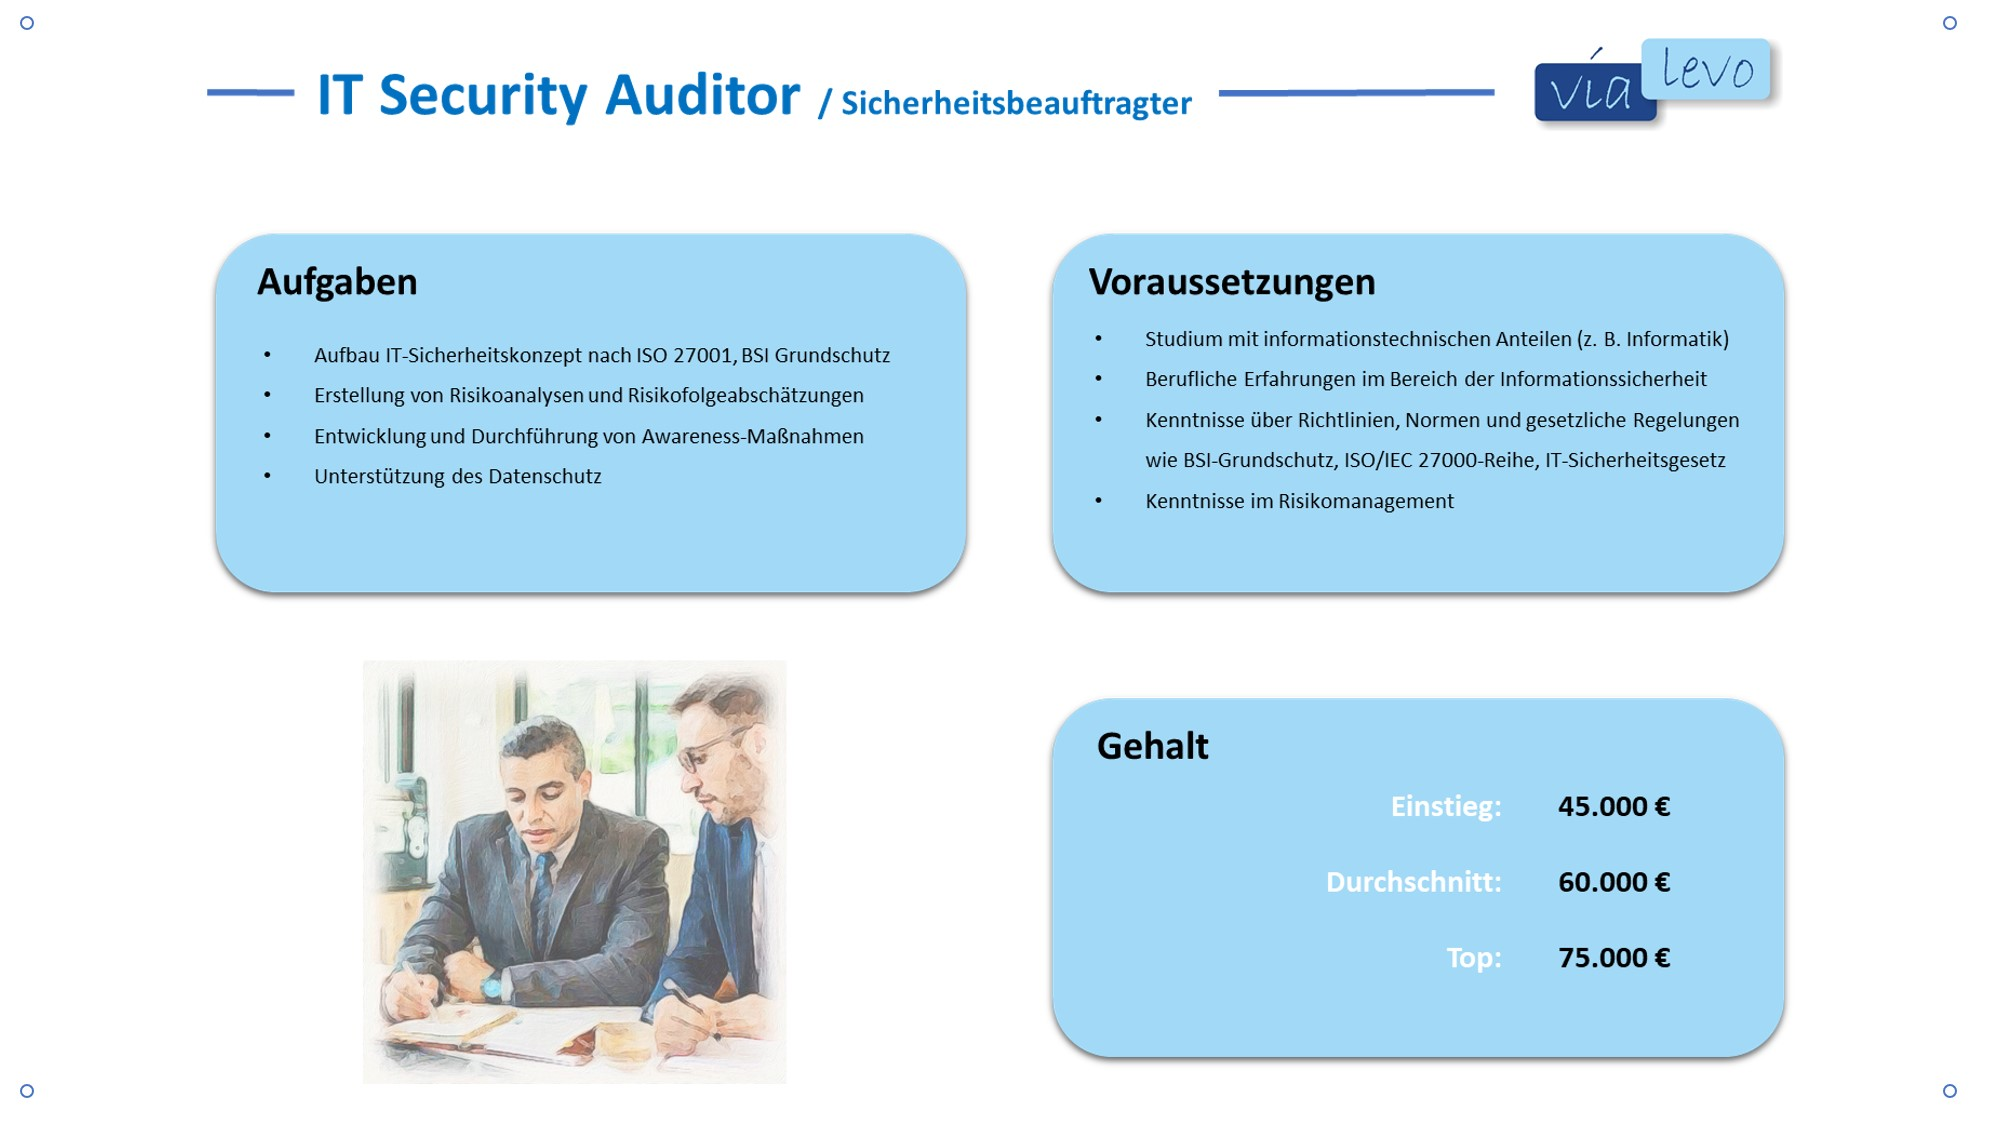 IT-Security Auditor Gehalt